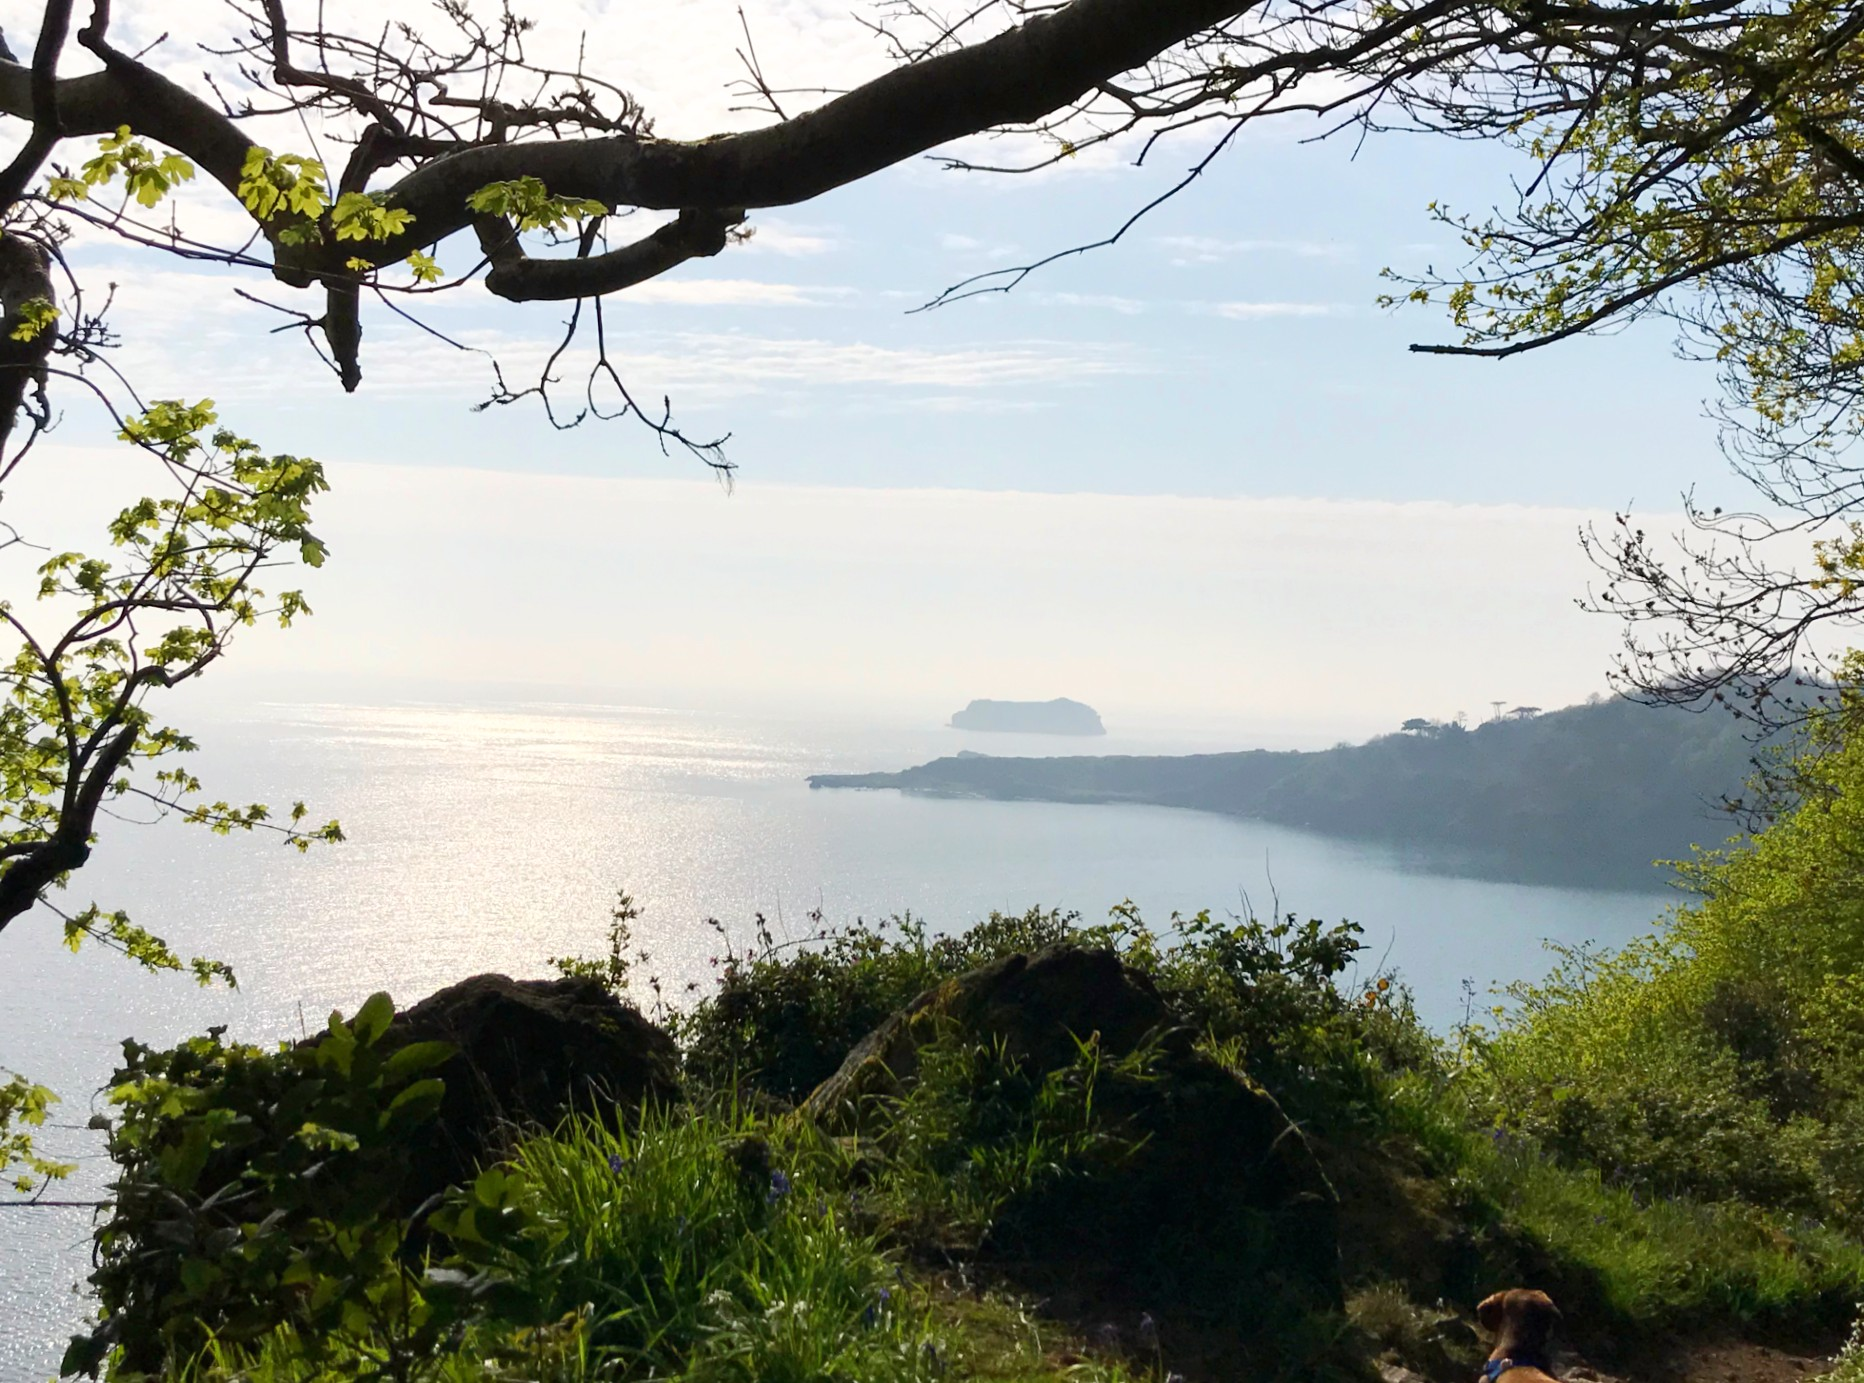 Ten Reasons to have a break away in Torquay in the era of Covid 19